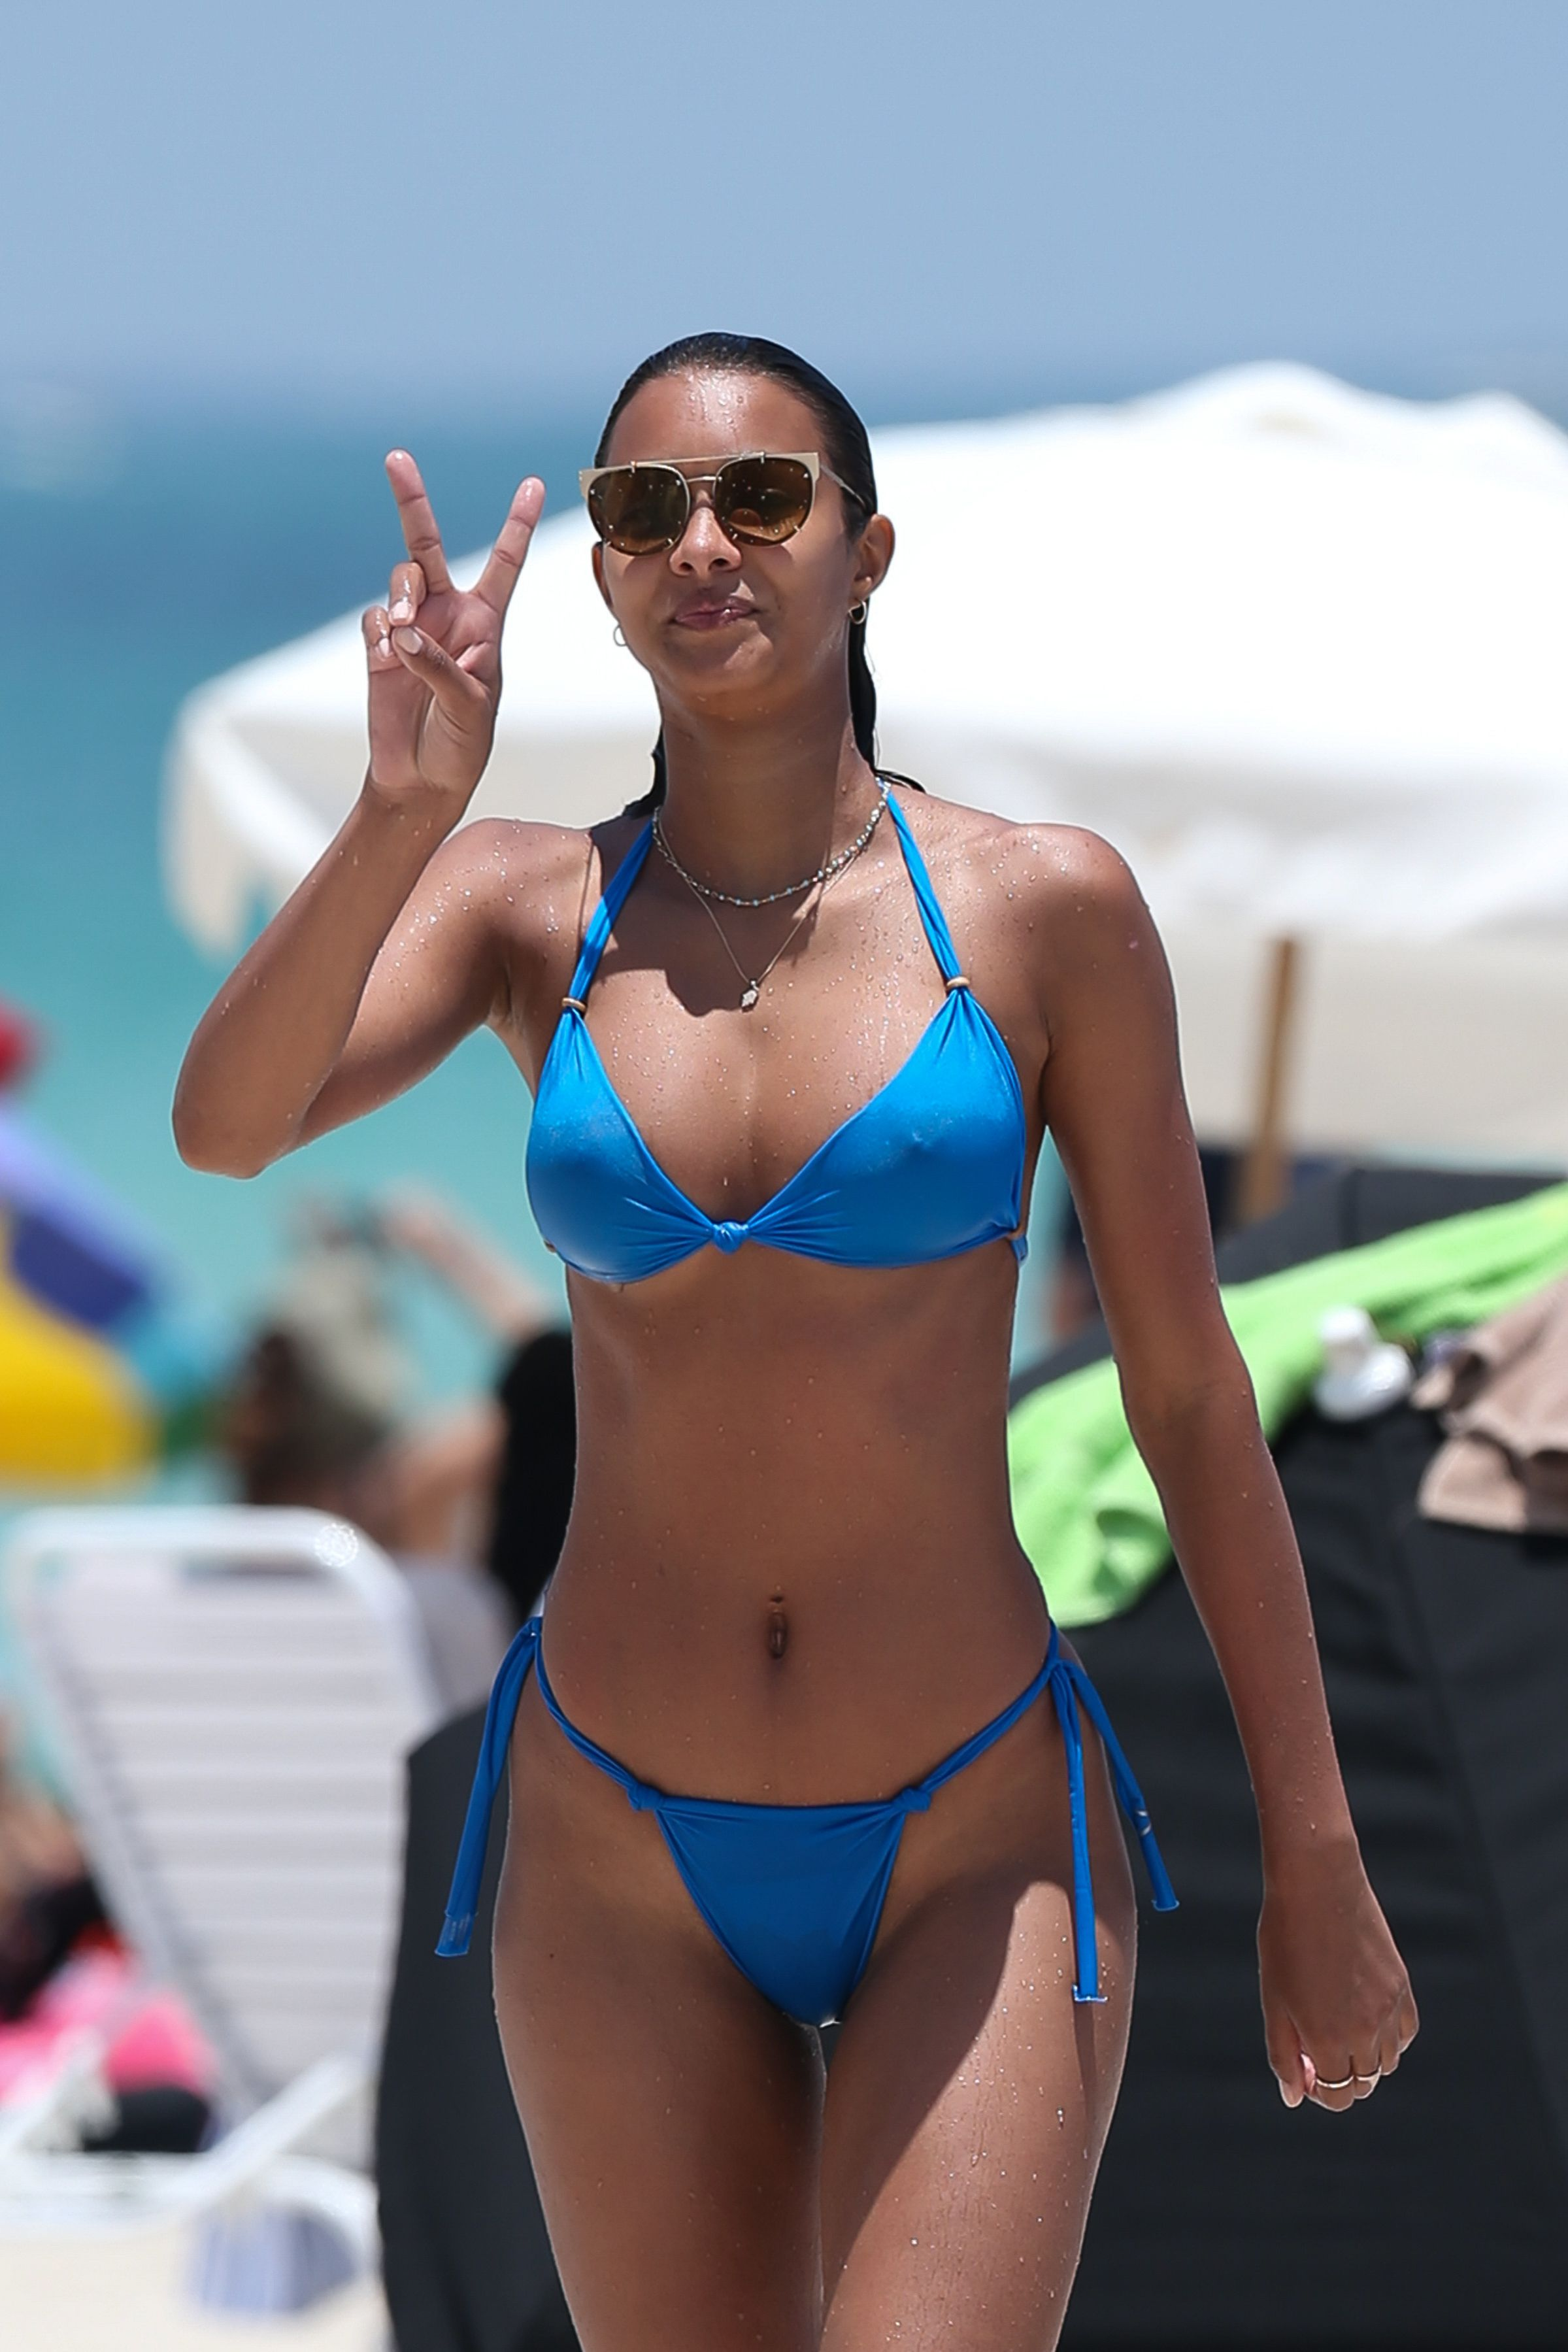 Fappening Lais Ribeiro nudes (75 foto and video), Ass, Leaked, Twitter, swimsuit 2018